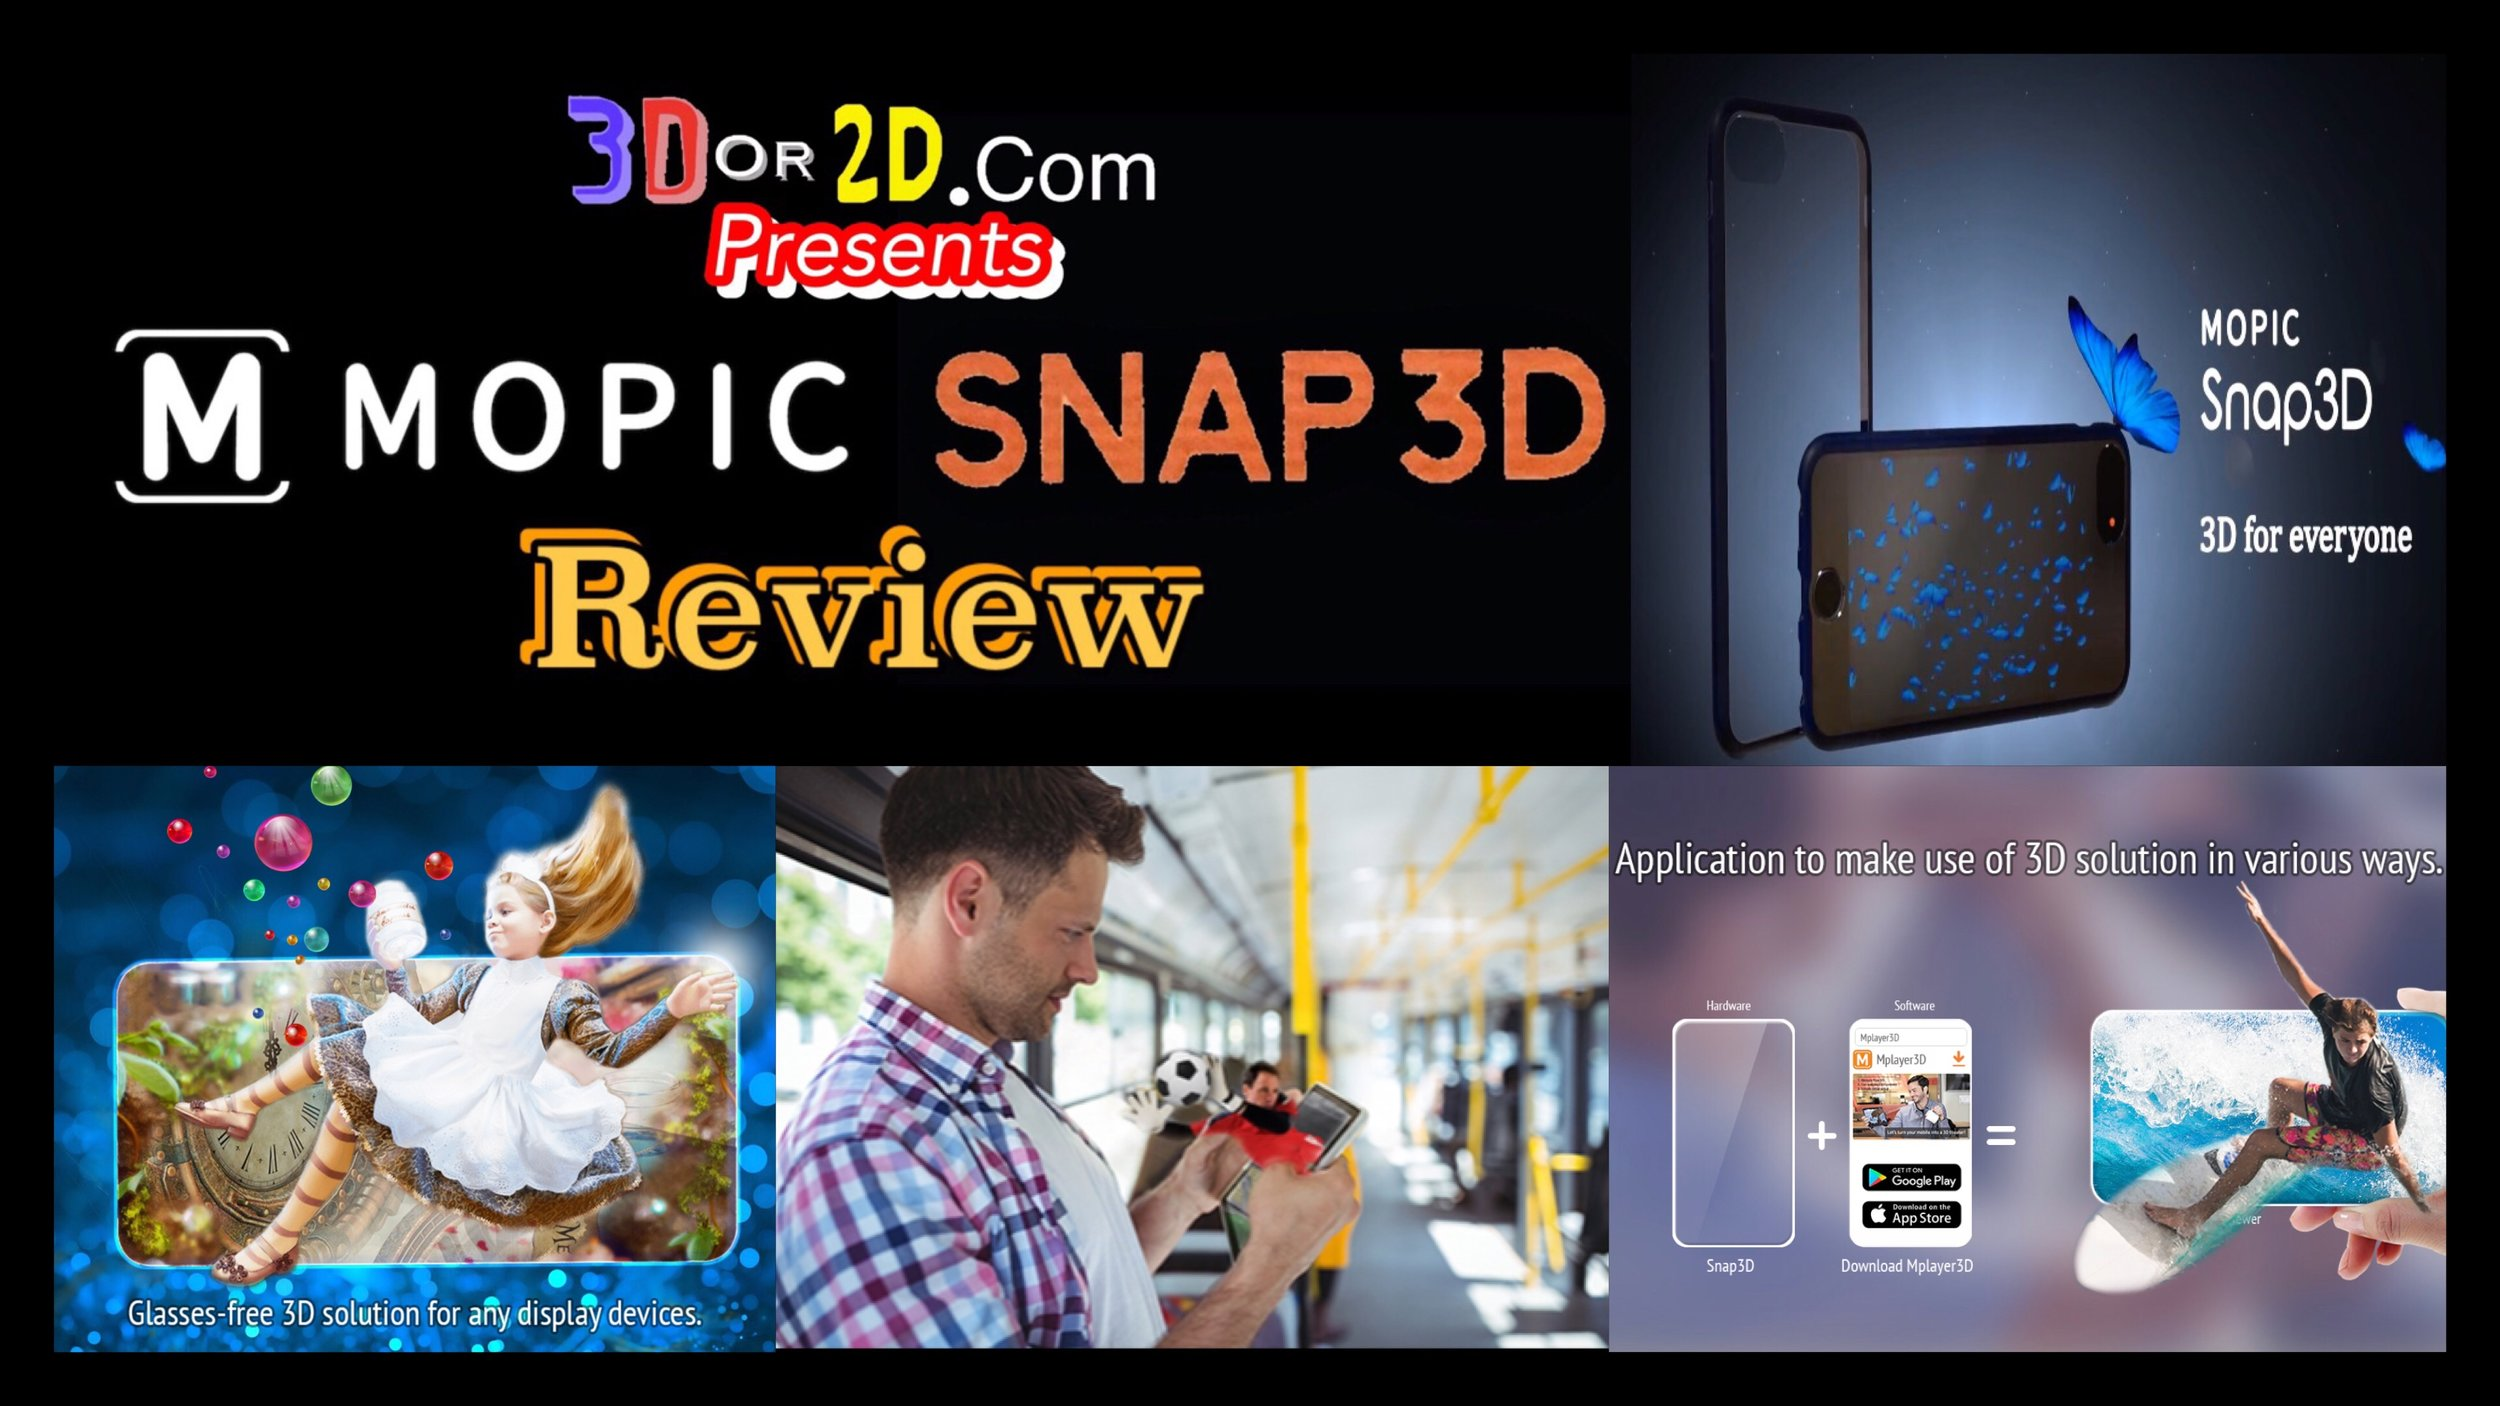 mopic-snap-3d-case-review.JPG